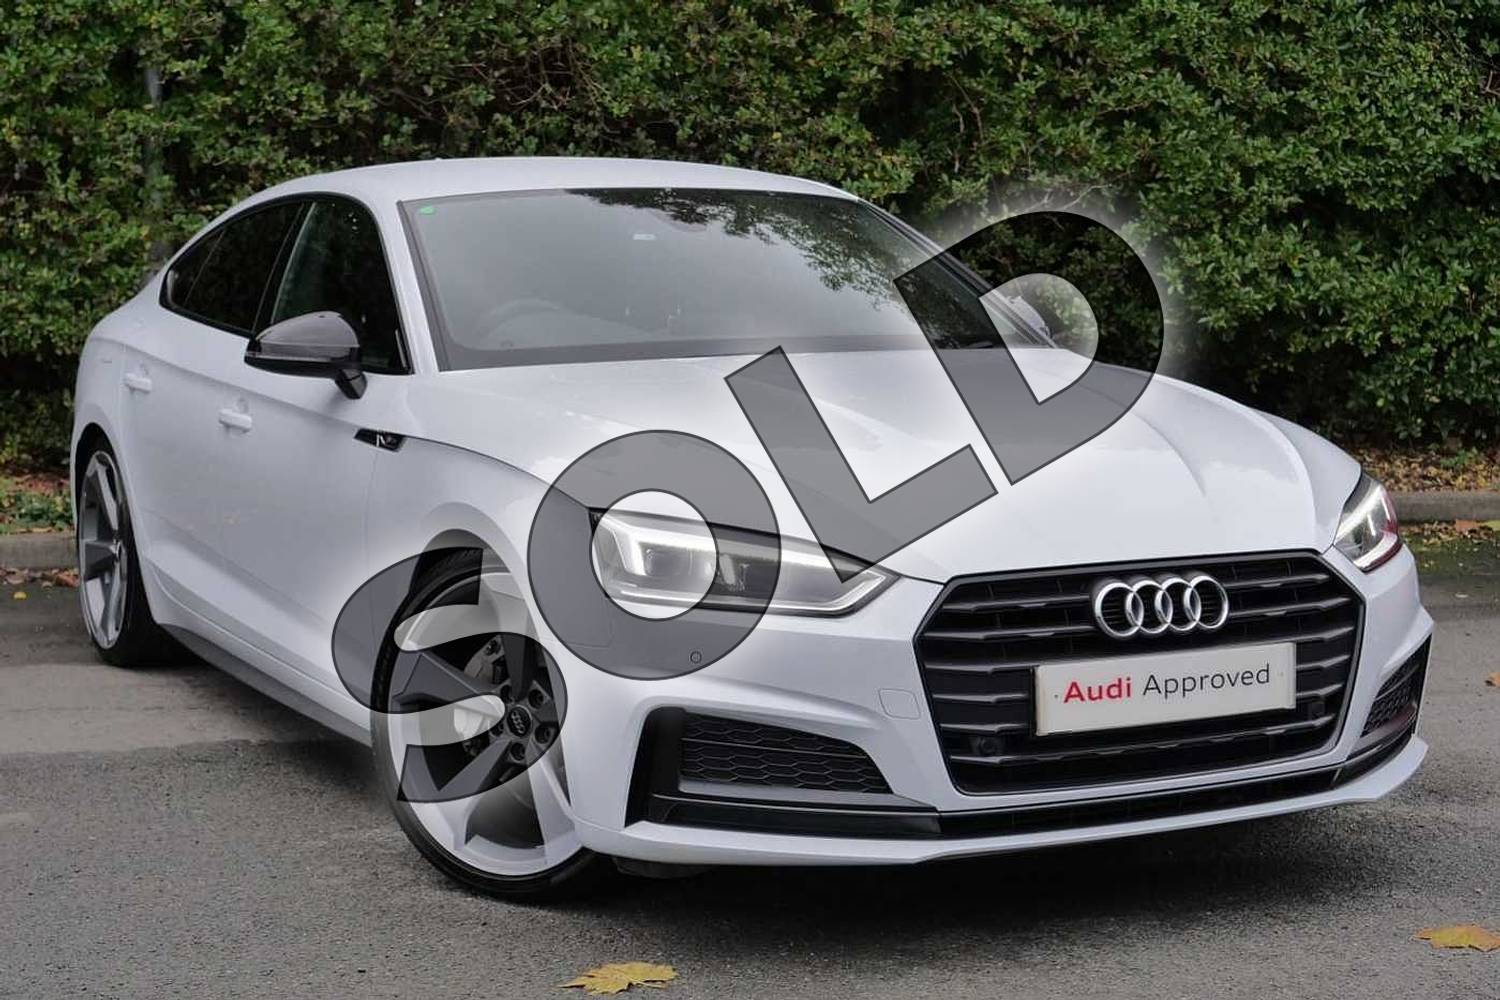 2019 Audi A5 Diesel Sportback 40 TDI Black Edition 5dr S Tronic in Glacier White Metallic at Worcester Audi